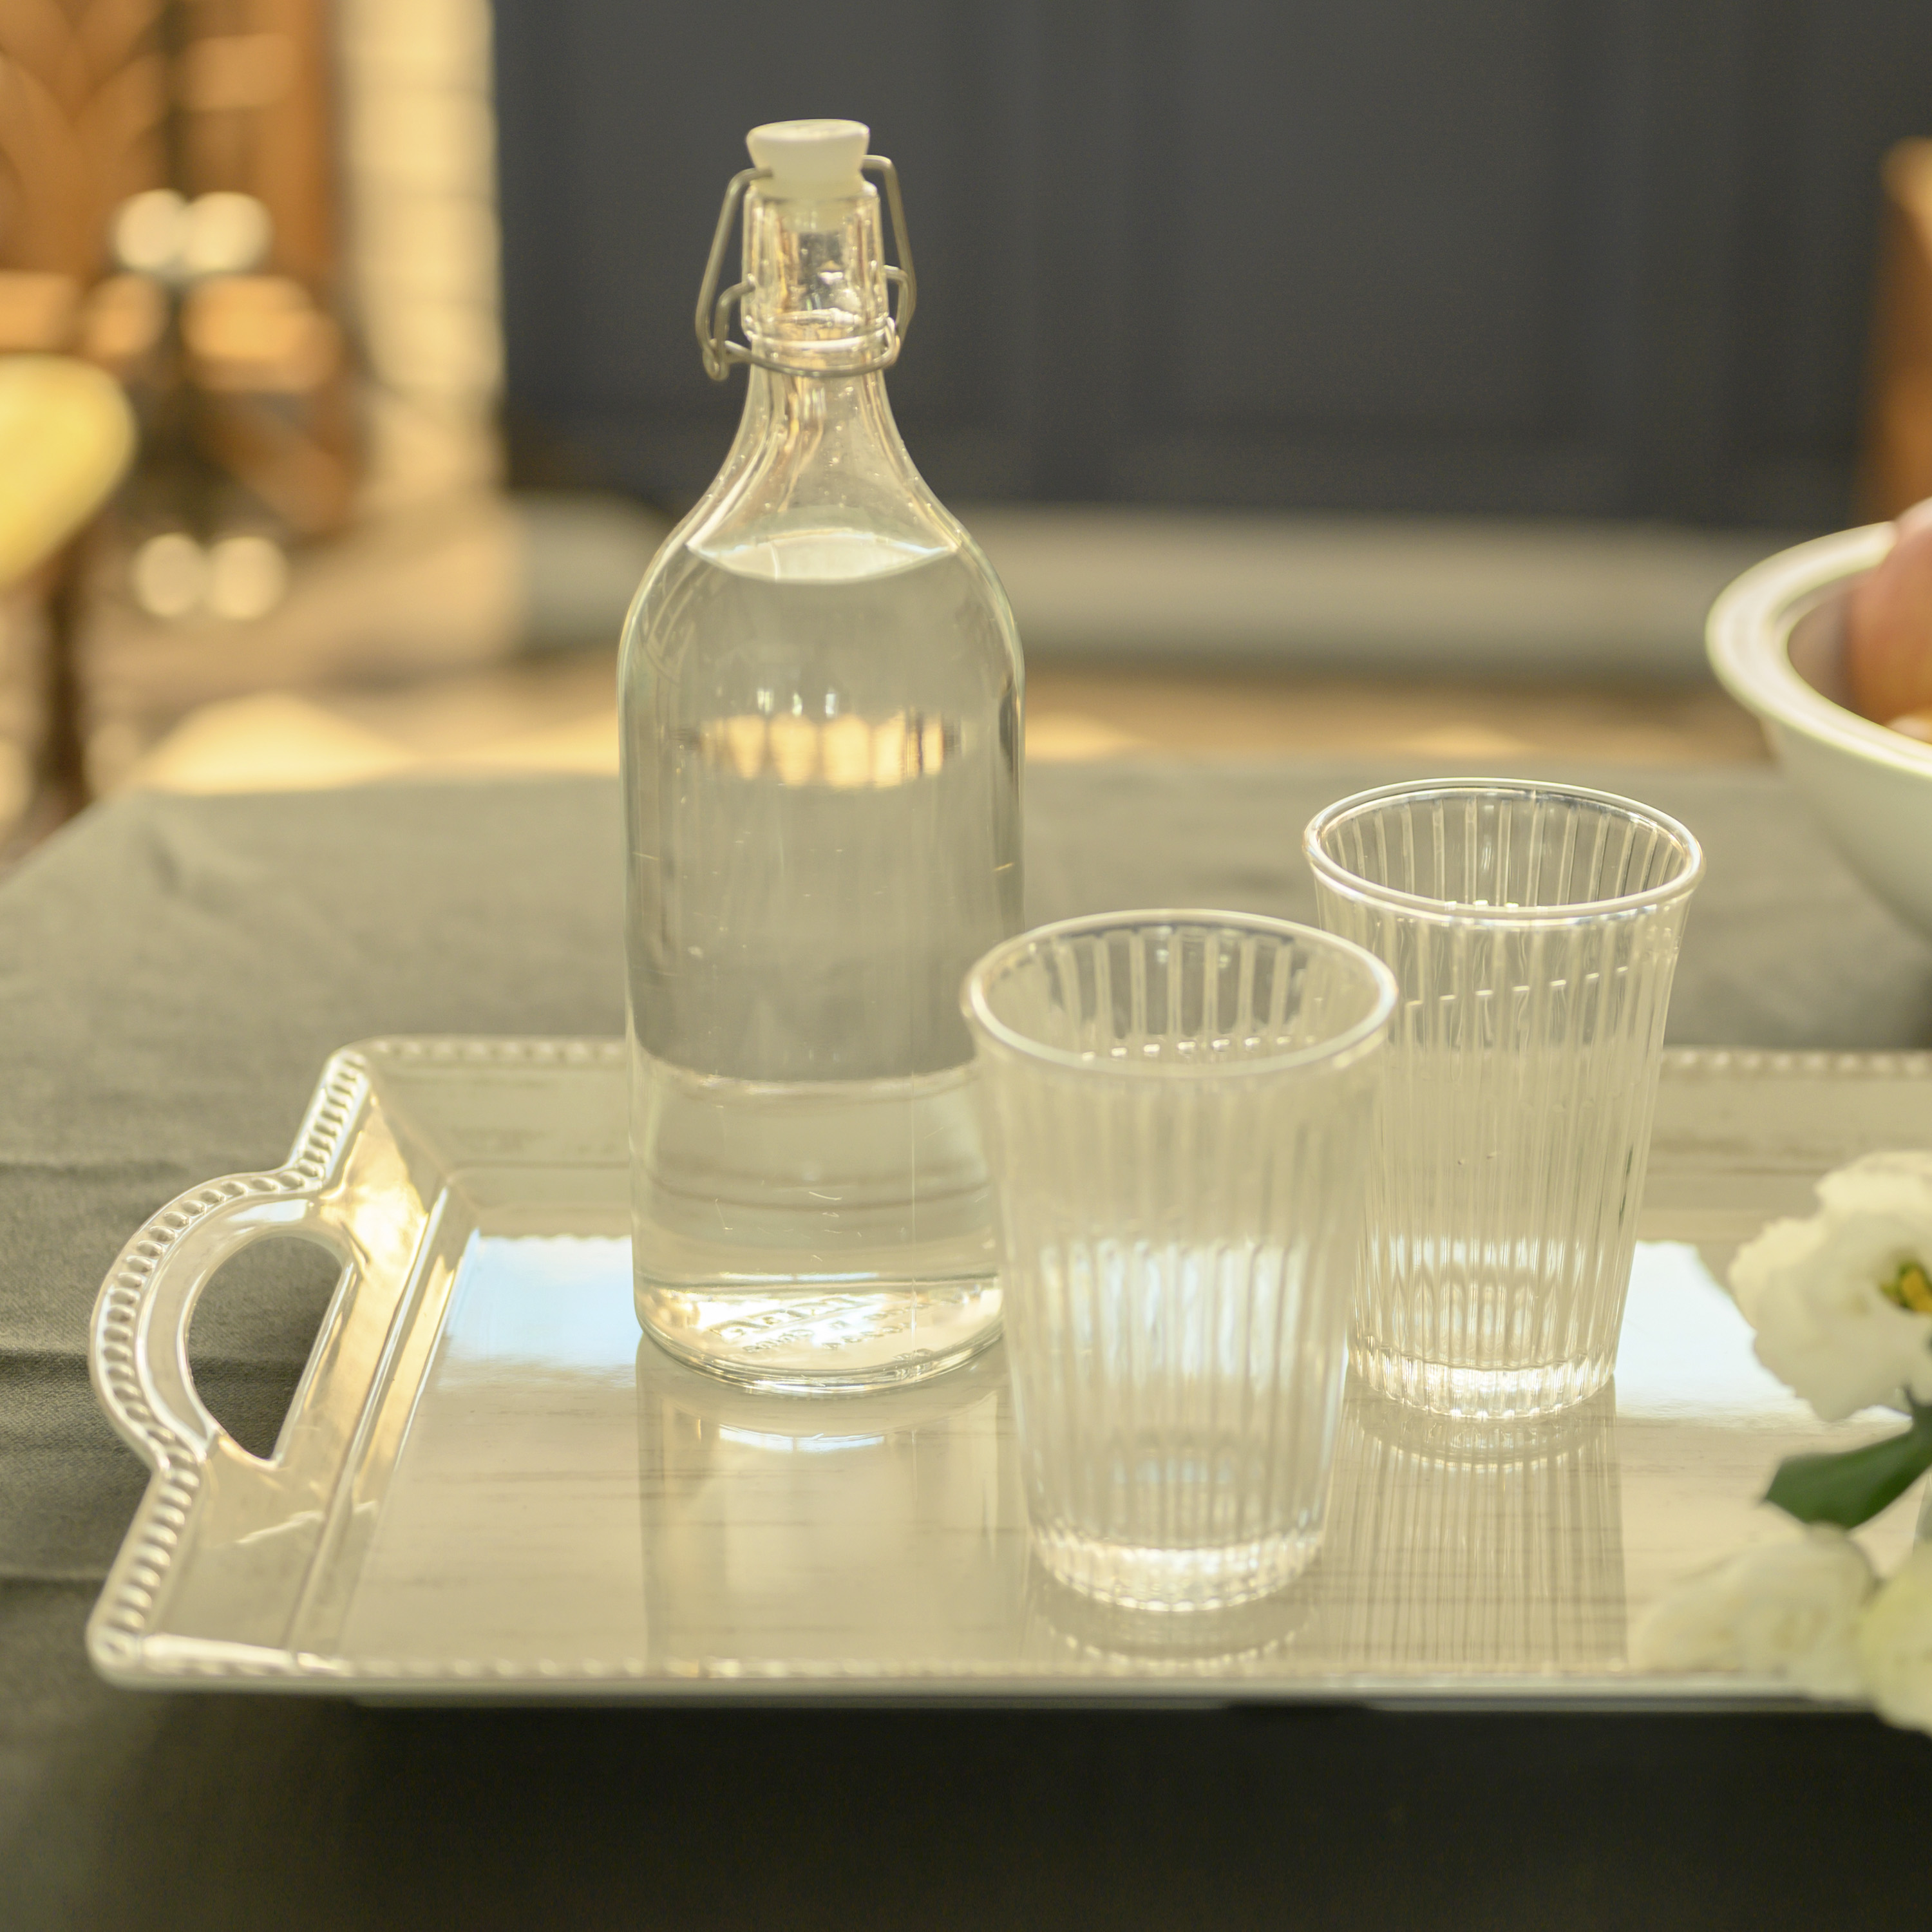 French Country Serving Tray, Oyster slideshow image 4